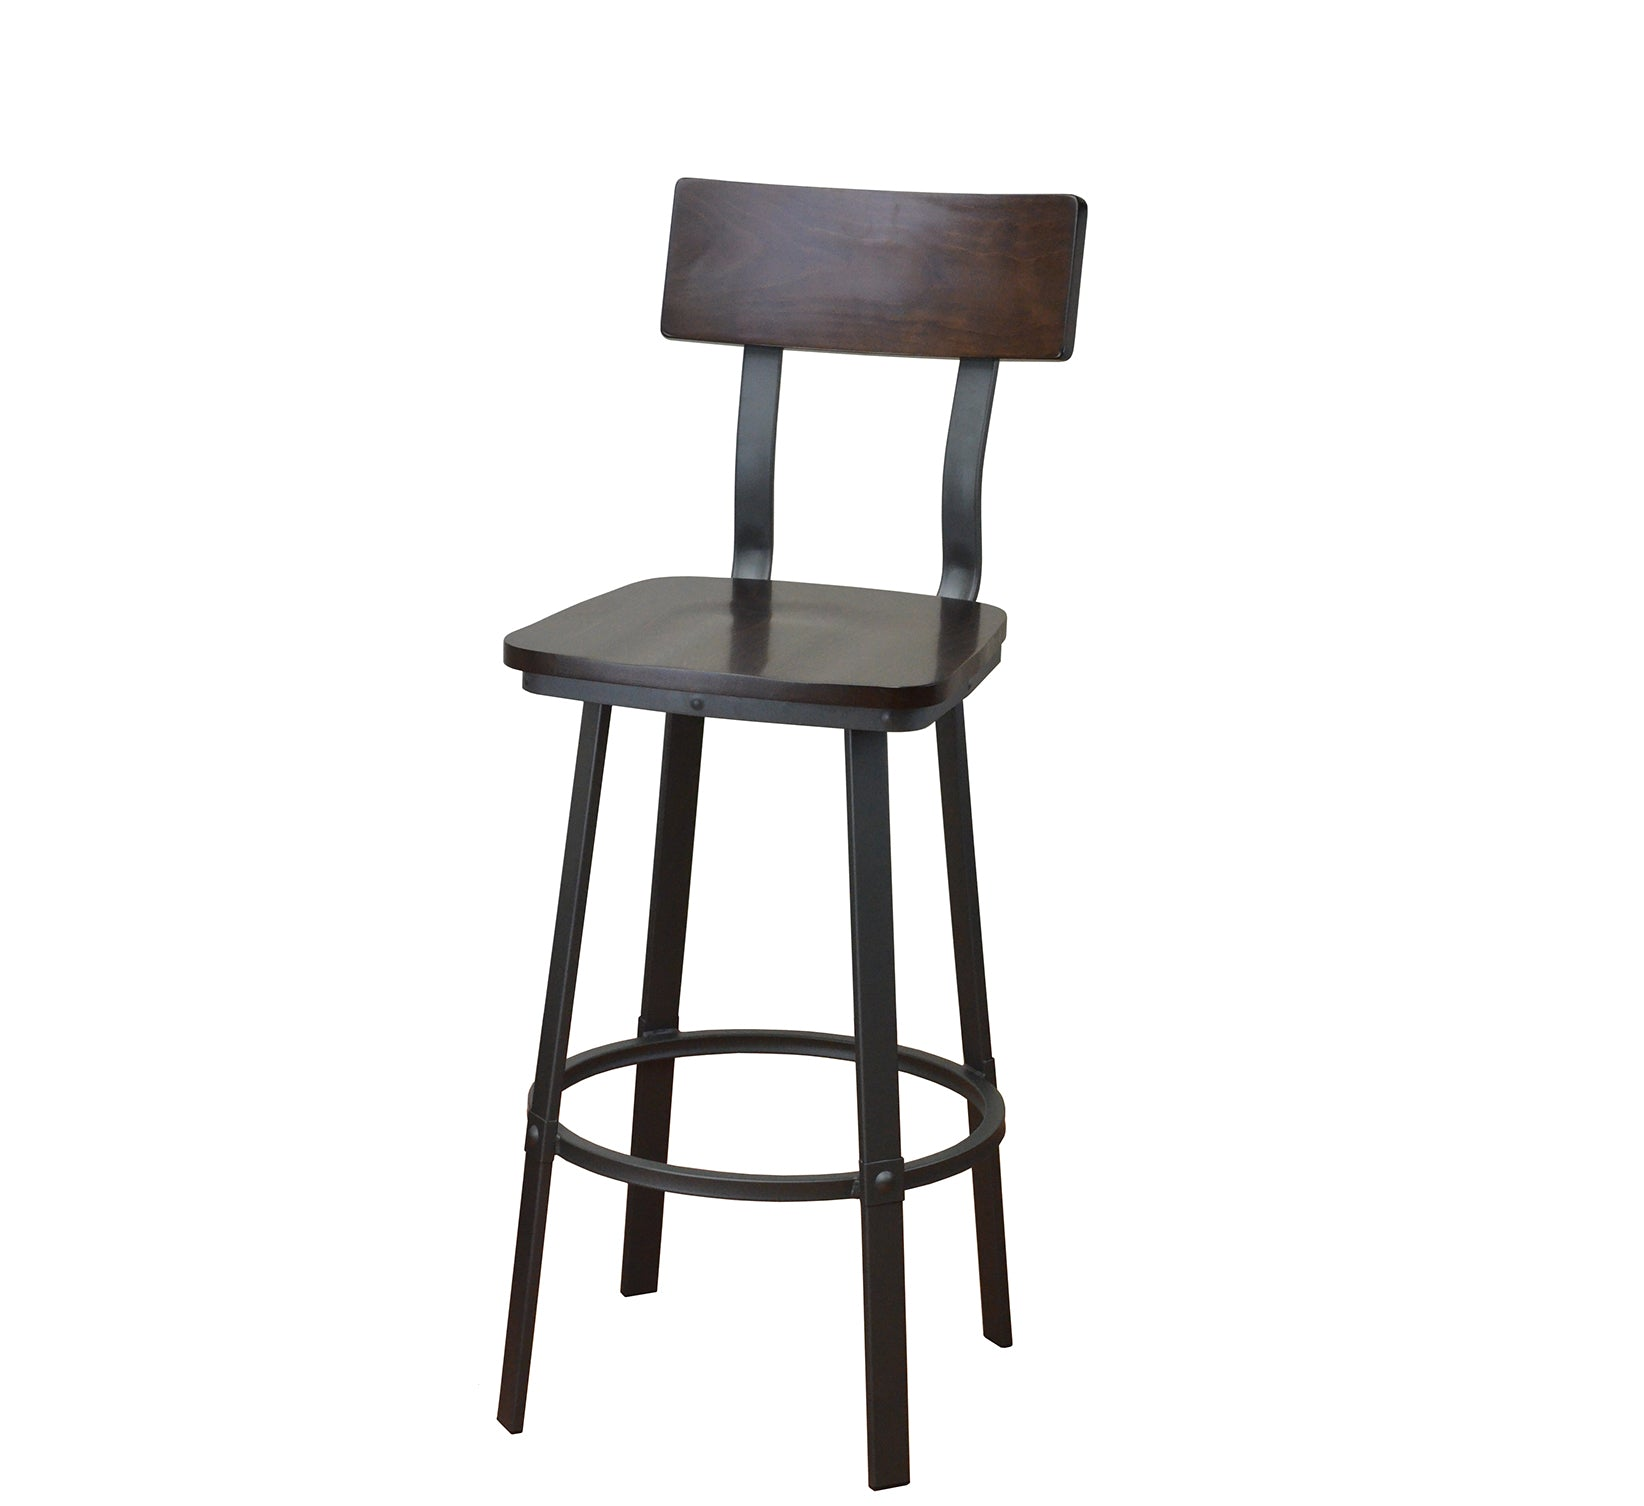 stool on files low back kitchen commercial endearing fascinating for furniture industrial ideas murphy interior wonderful and bar stools barstools contemporary styles with